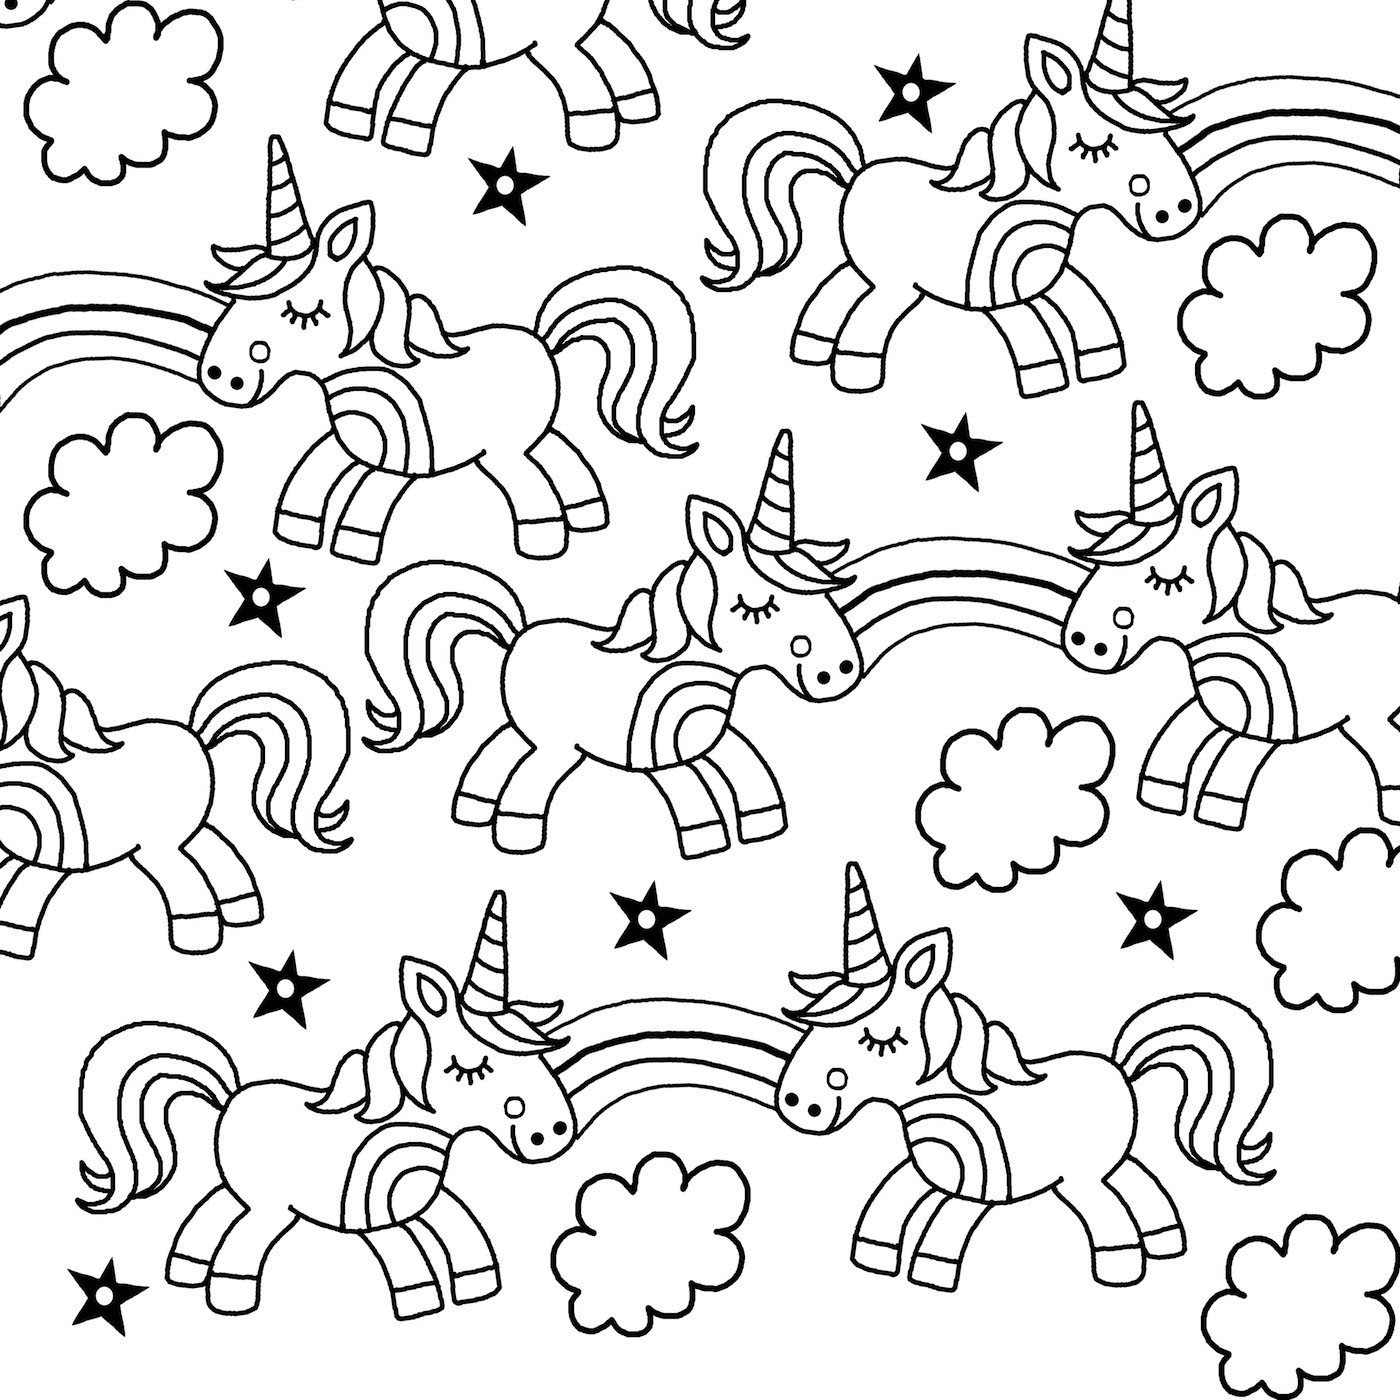 a unicorn coloring sheet realistic unicorn coloring pages download and print for free a coloring sheet unicorn